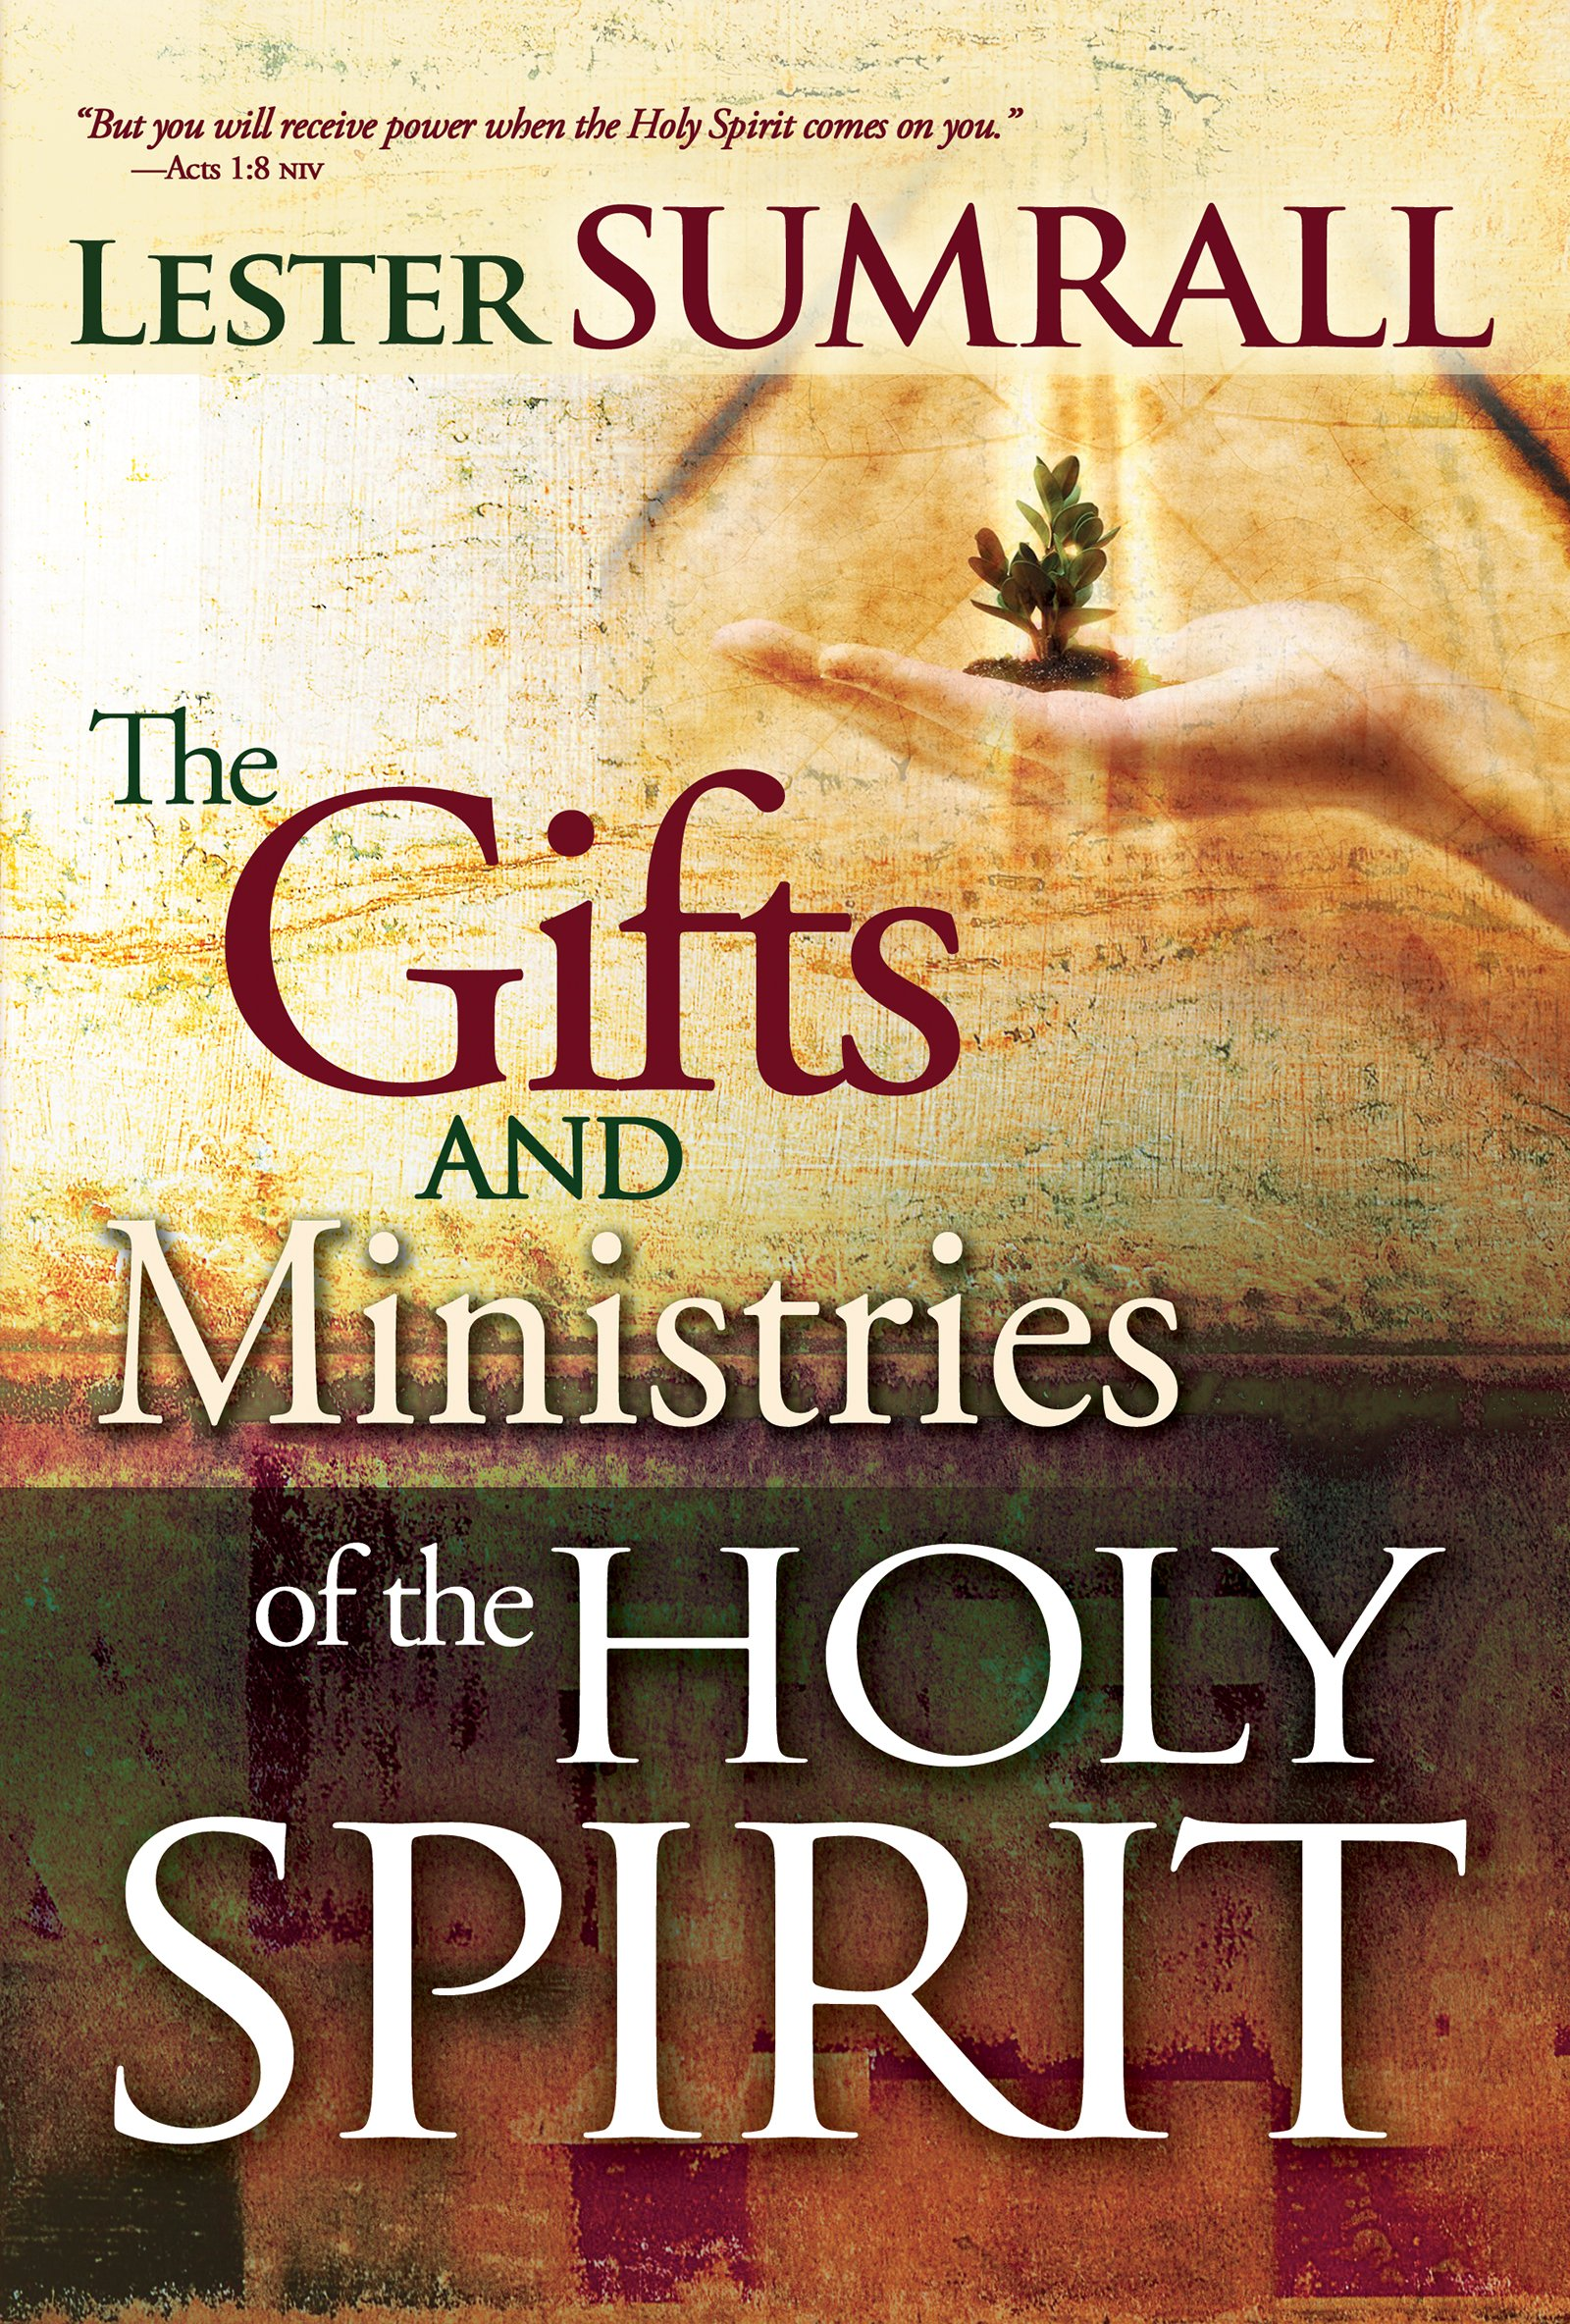 The Gifts and Ministries of the Holy Spirit Paperback – February 1, 2005